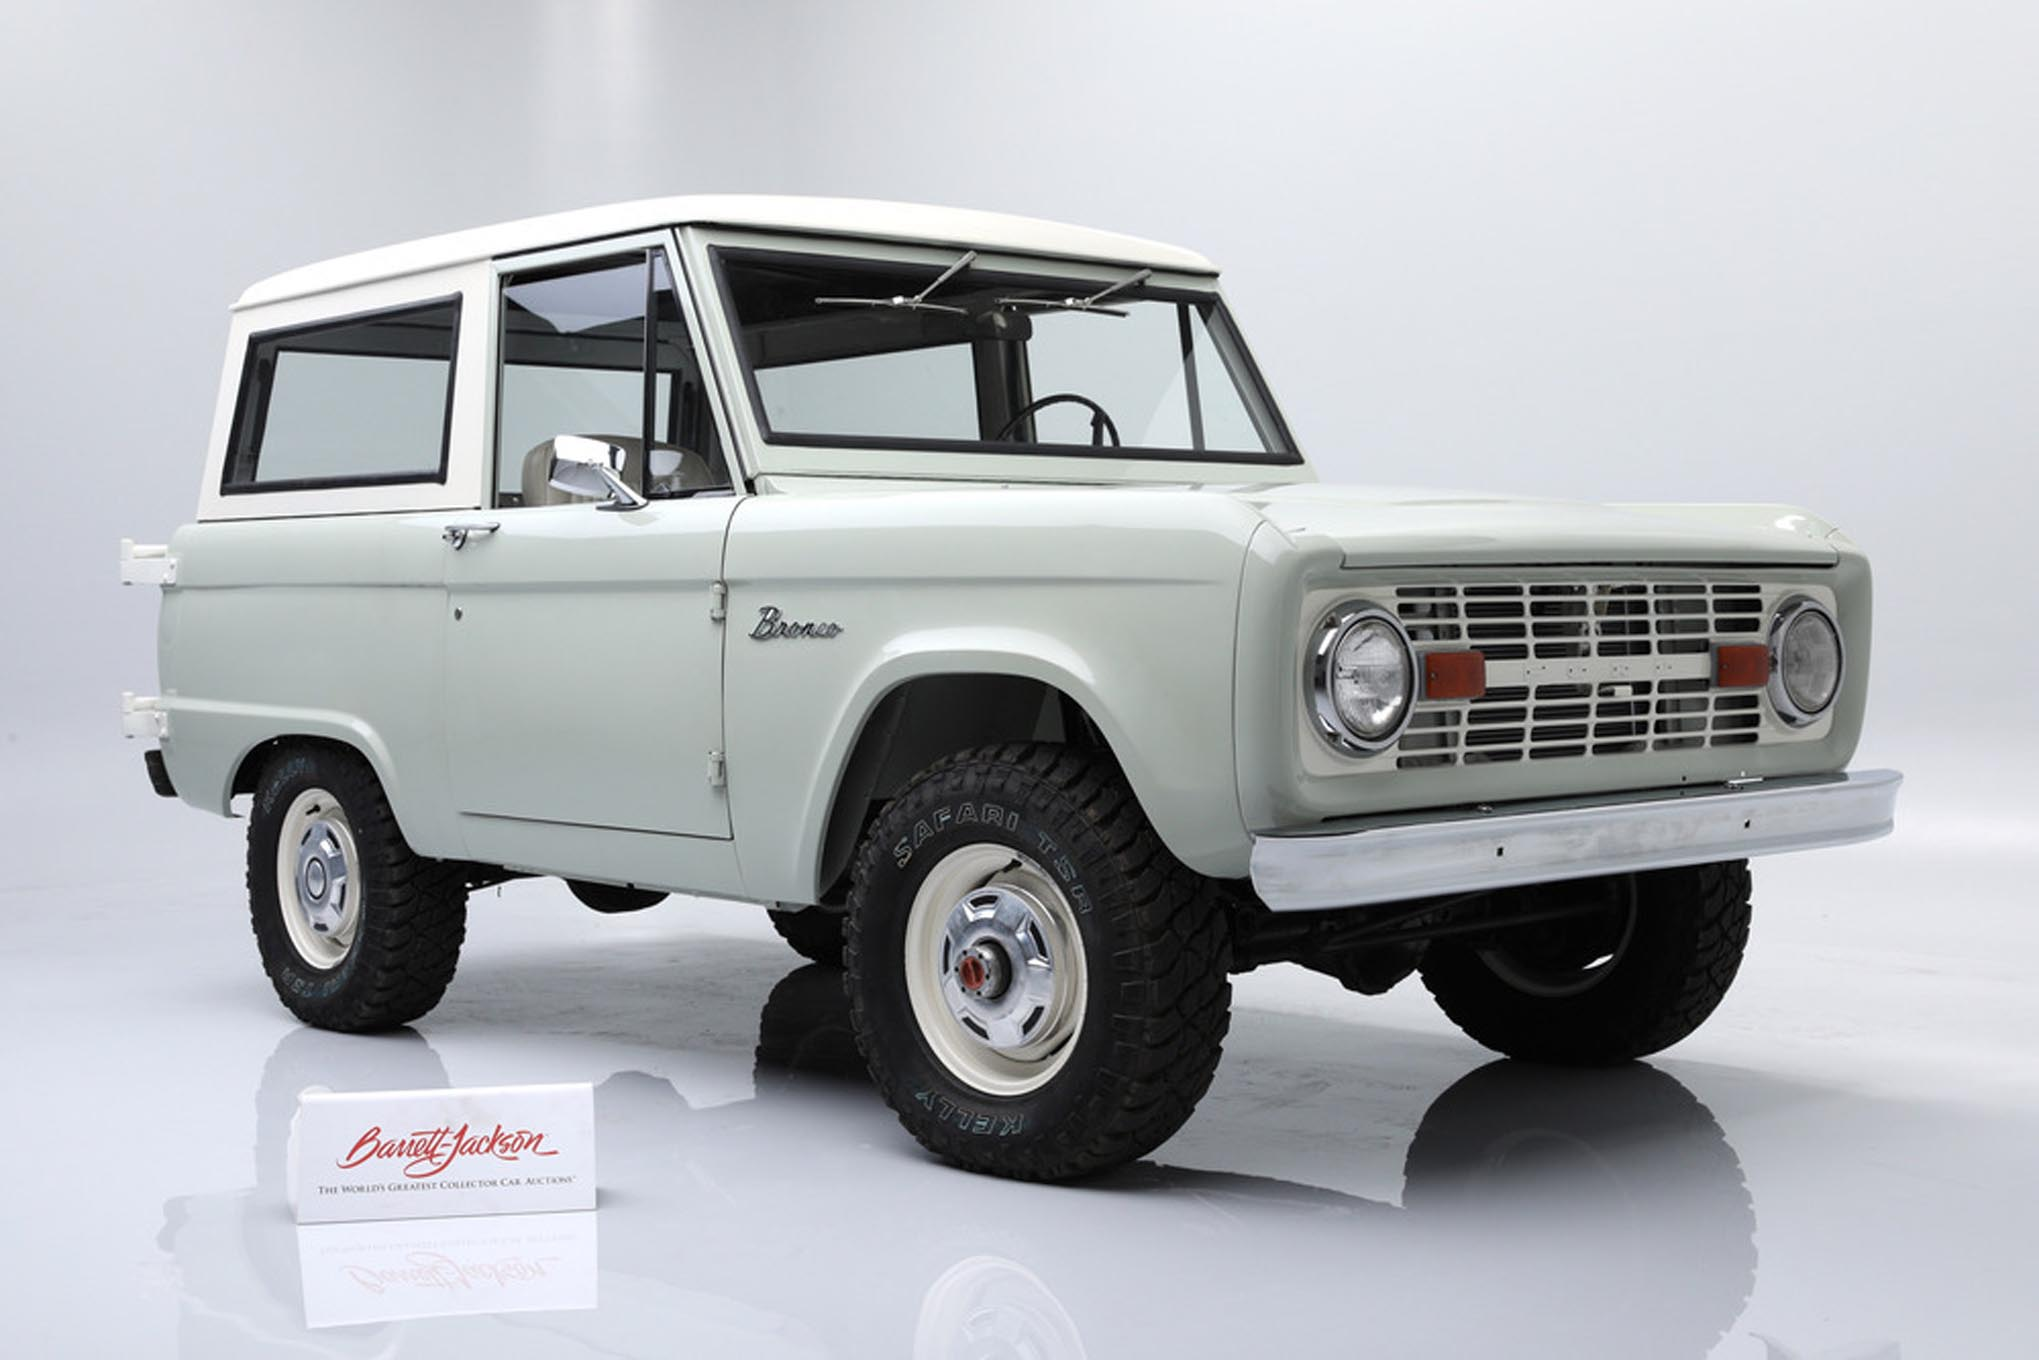 Classic Early Ford Bronco Auction At Barrett Jackson